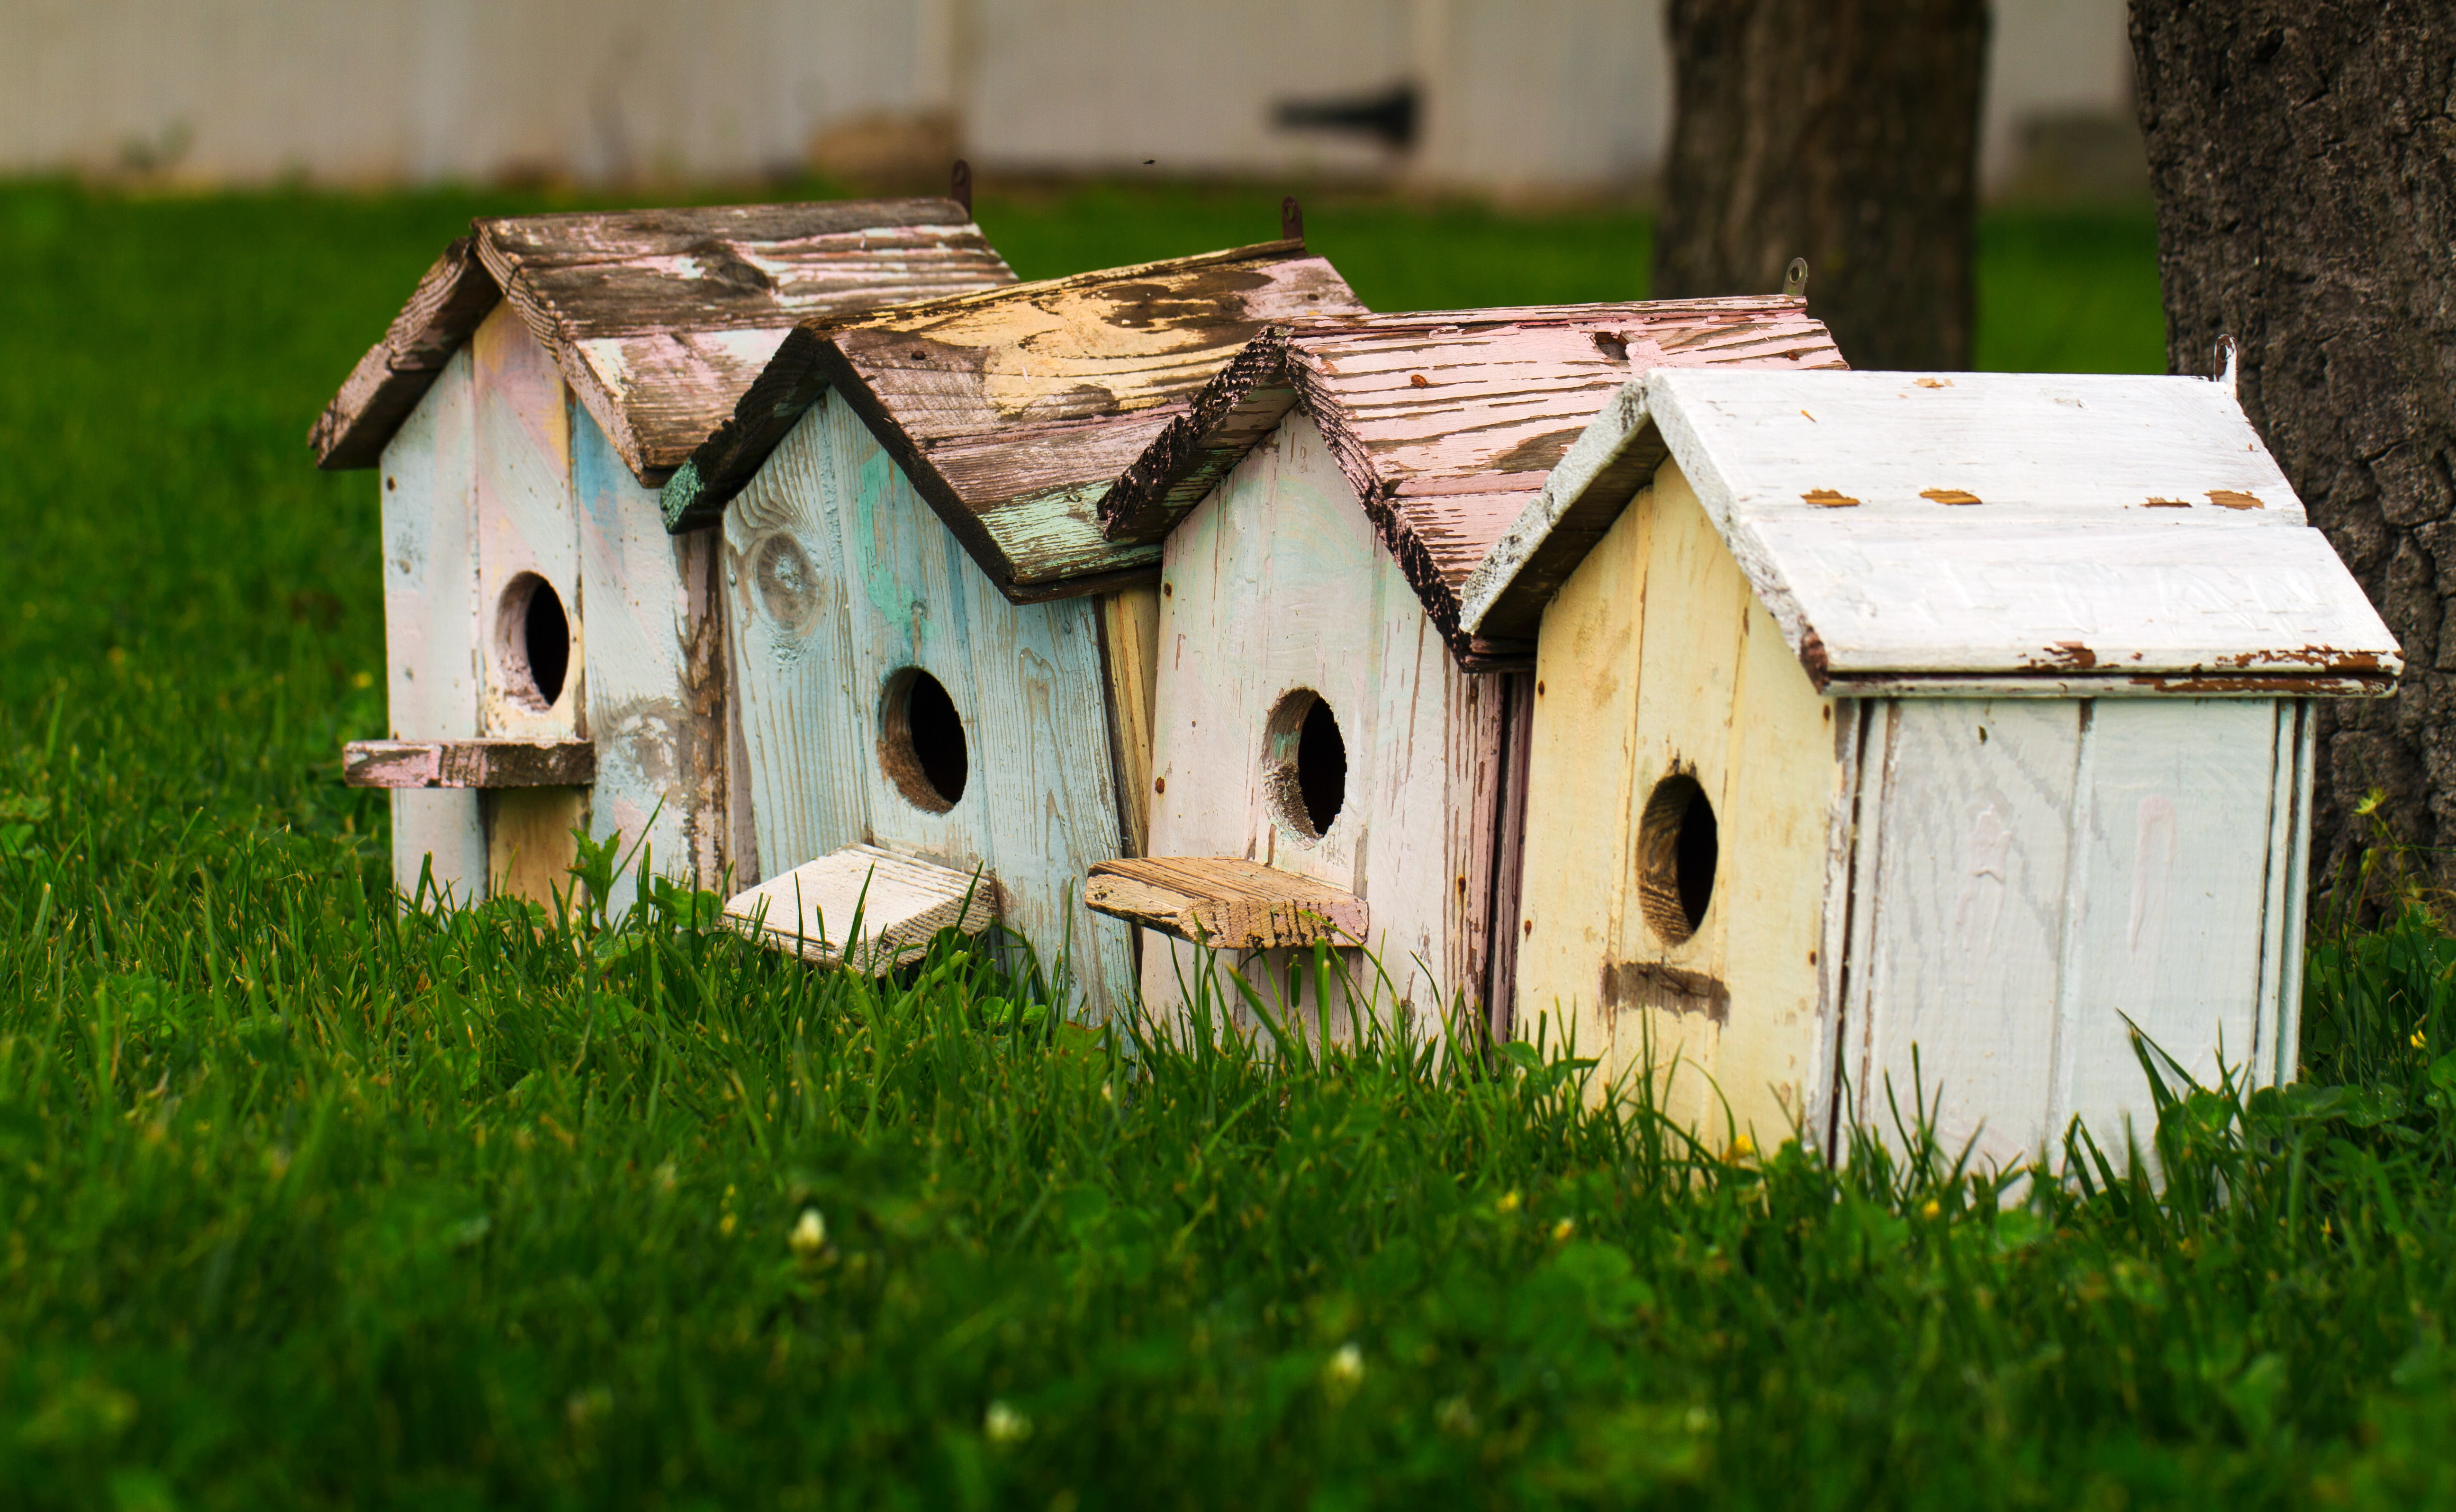 Row of rustic vintage birdhouses in the grass